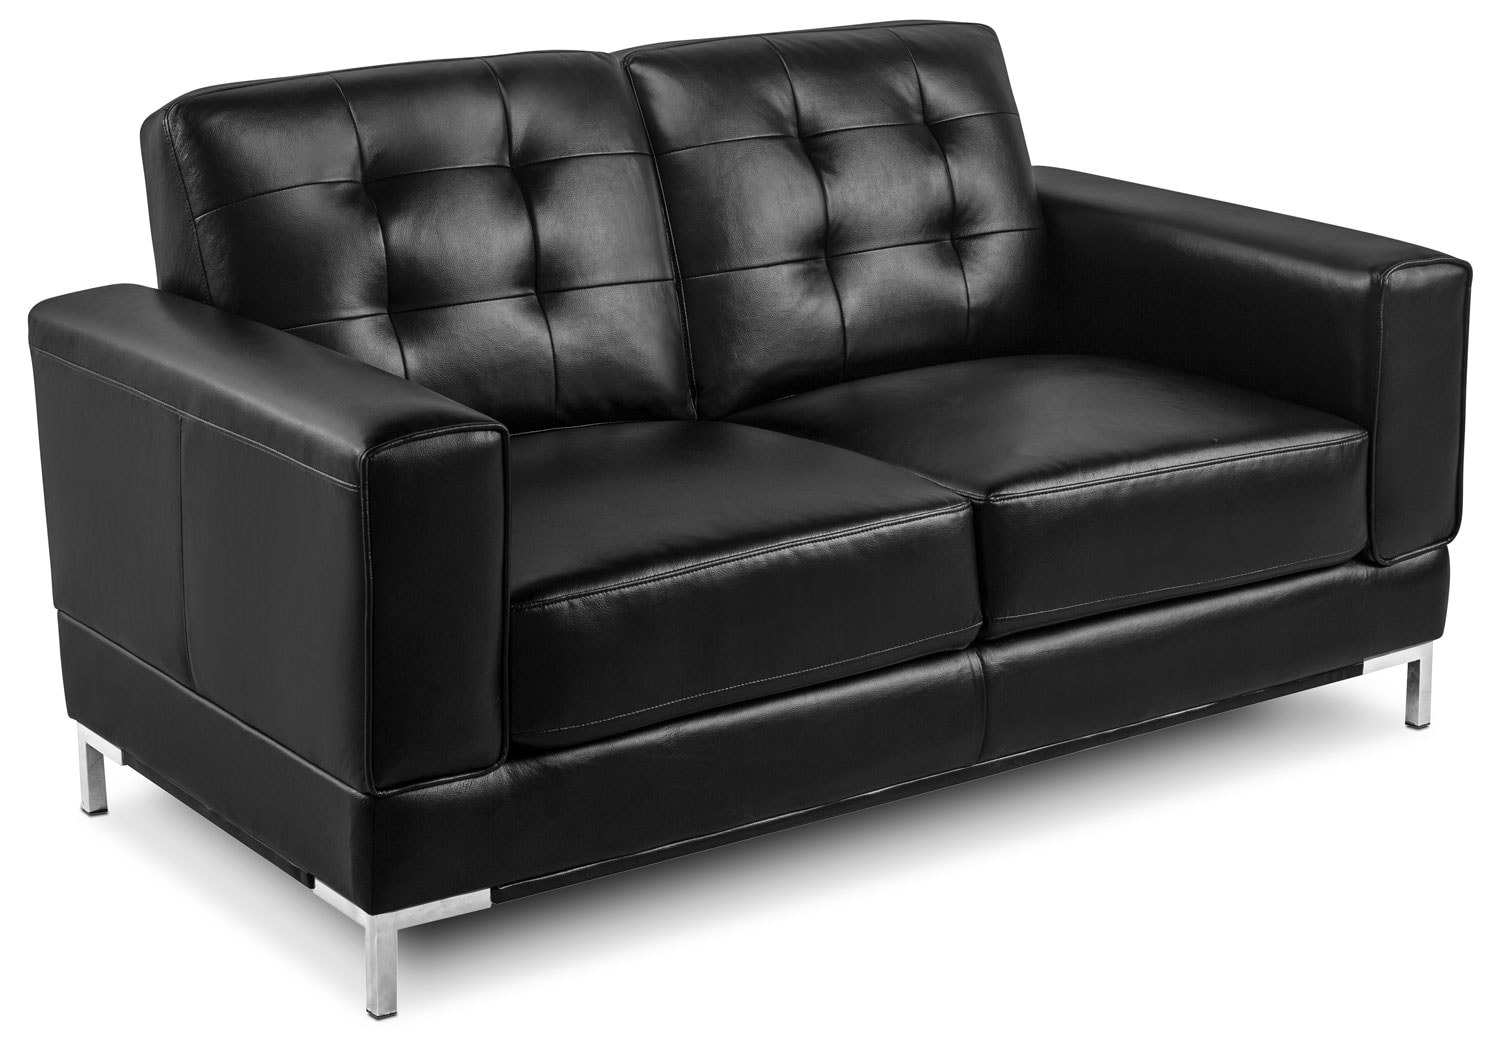 Living Room Furniture - Myer Leather-Look Fabric Loveseat - Black